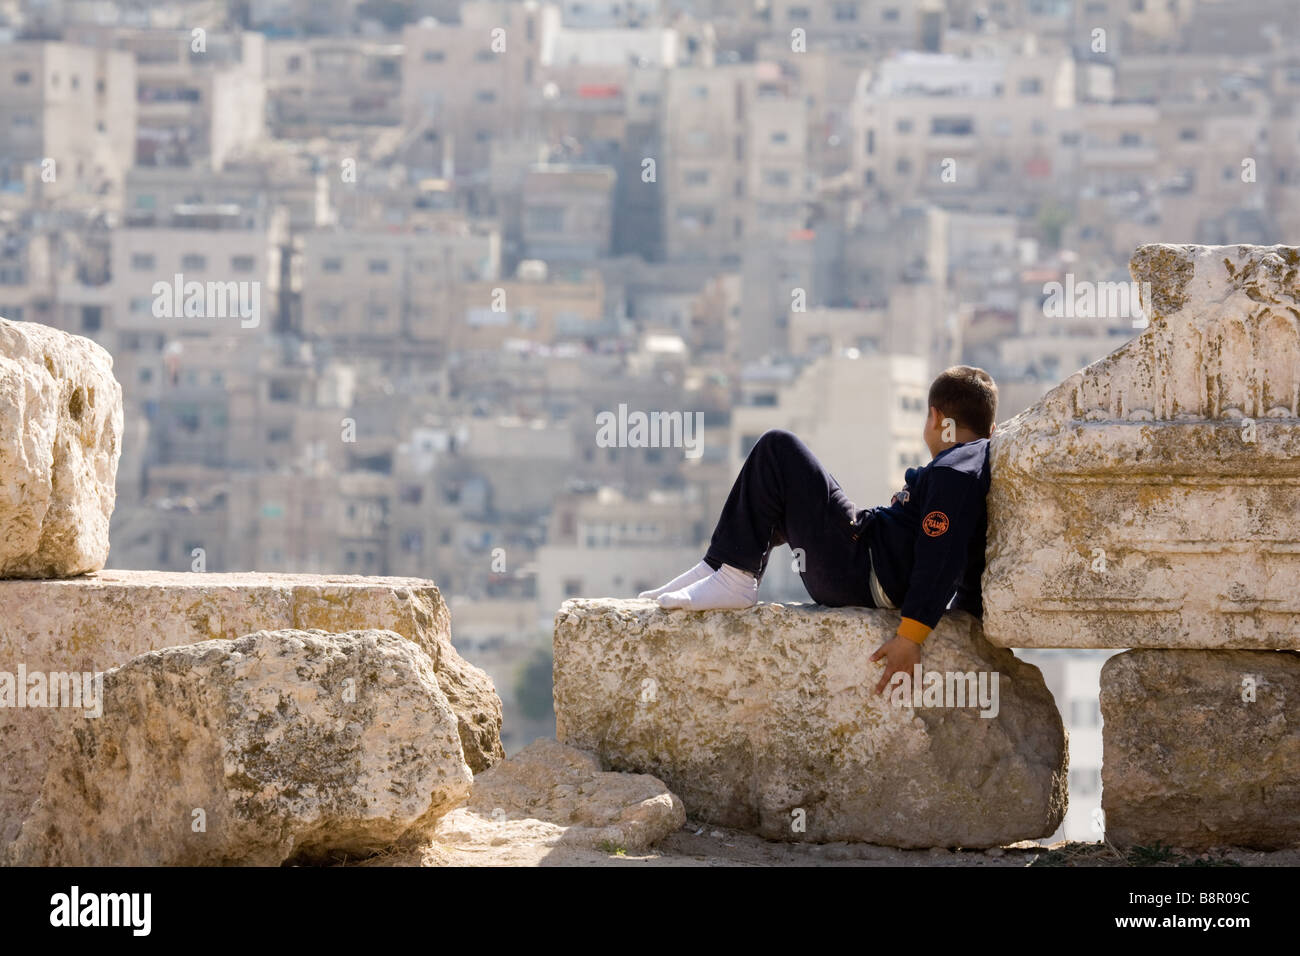 a-young-jordanian-boy-child-looking-out-